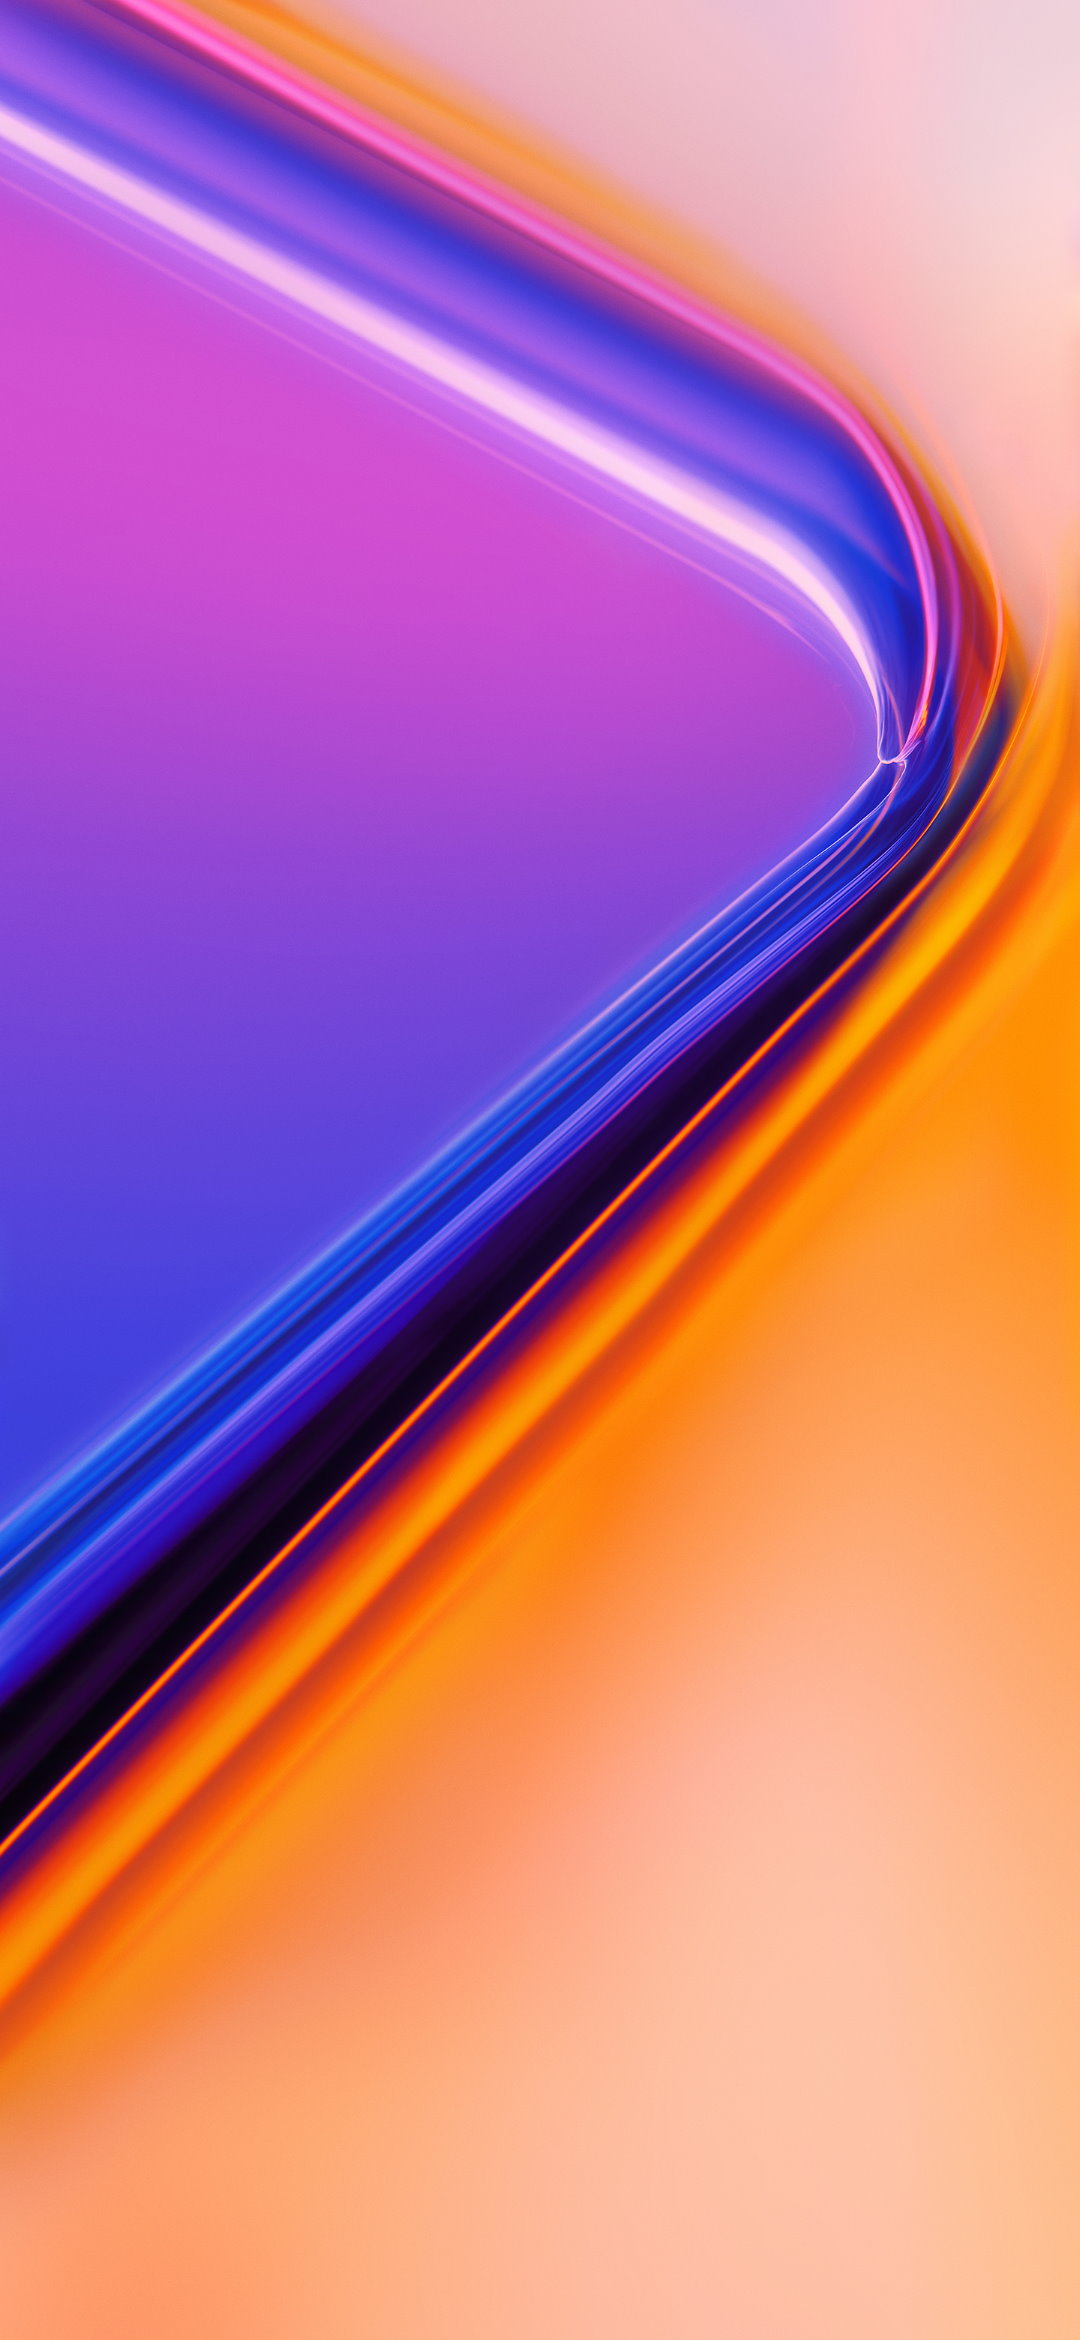 Wallpapers Huawei P30 Pro Pack 1